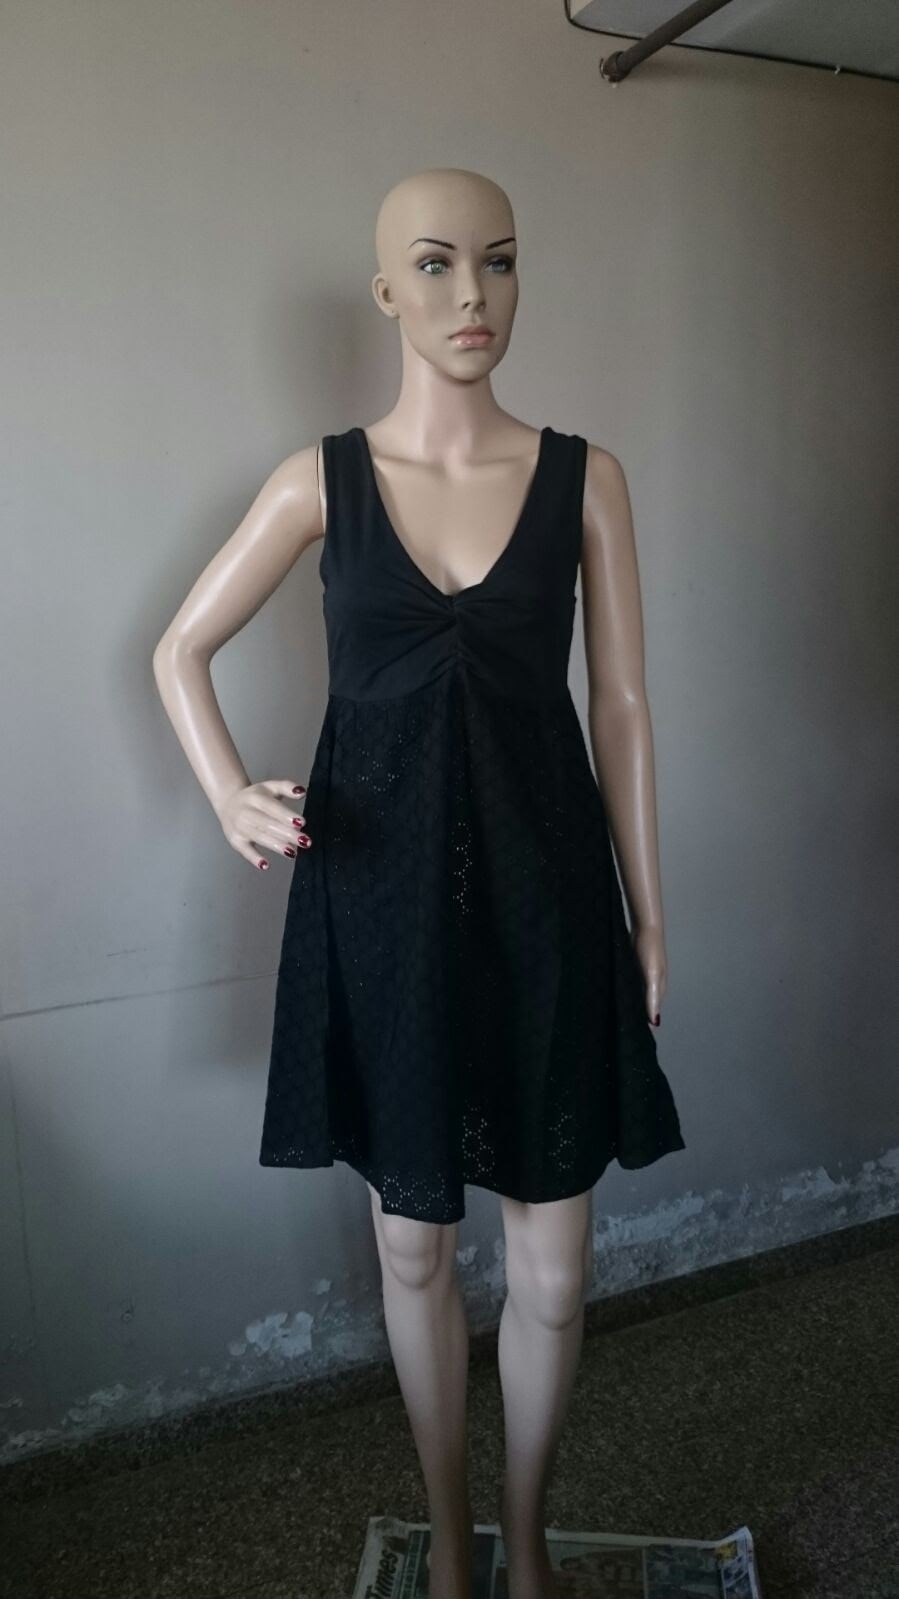 #blackdress #littledress #littleblackdress #casual-wear #gettogether #cottondress #sleevelessdress   Contact Us @ 8454847845   Brand: Pepe Jeans  Size: Medium Price @ Rs. 899/- Piece Available: 01  Colour Available: Black   Free Shipping All Over India.. Shipping Done Within 15 Minutes From Order.. Product Received Within 2-3 Business Days...